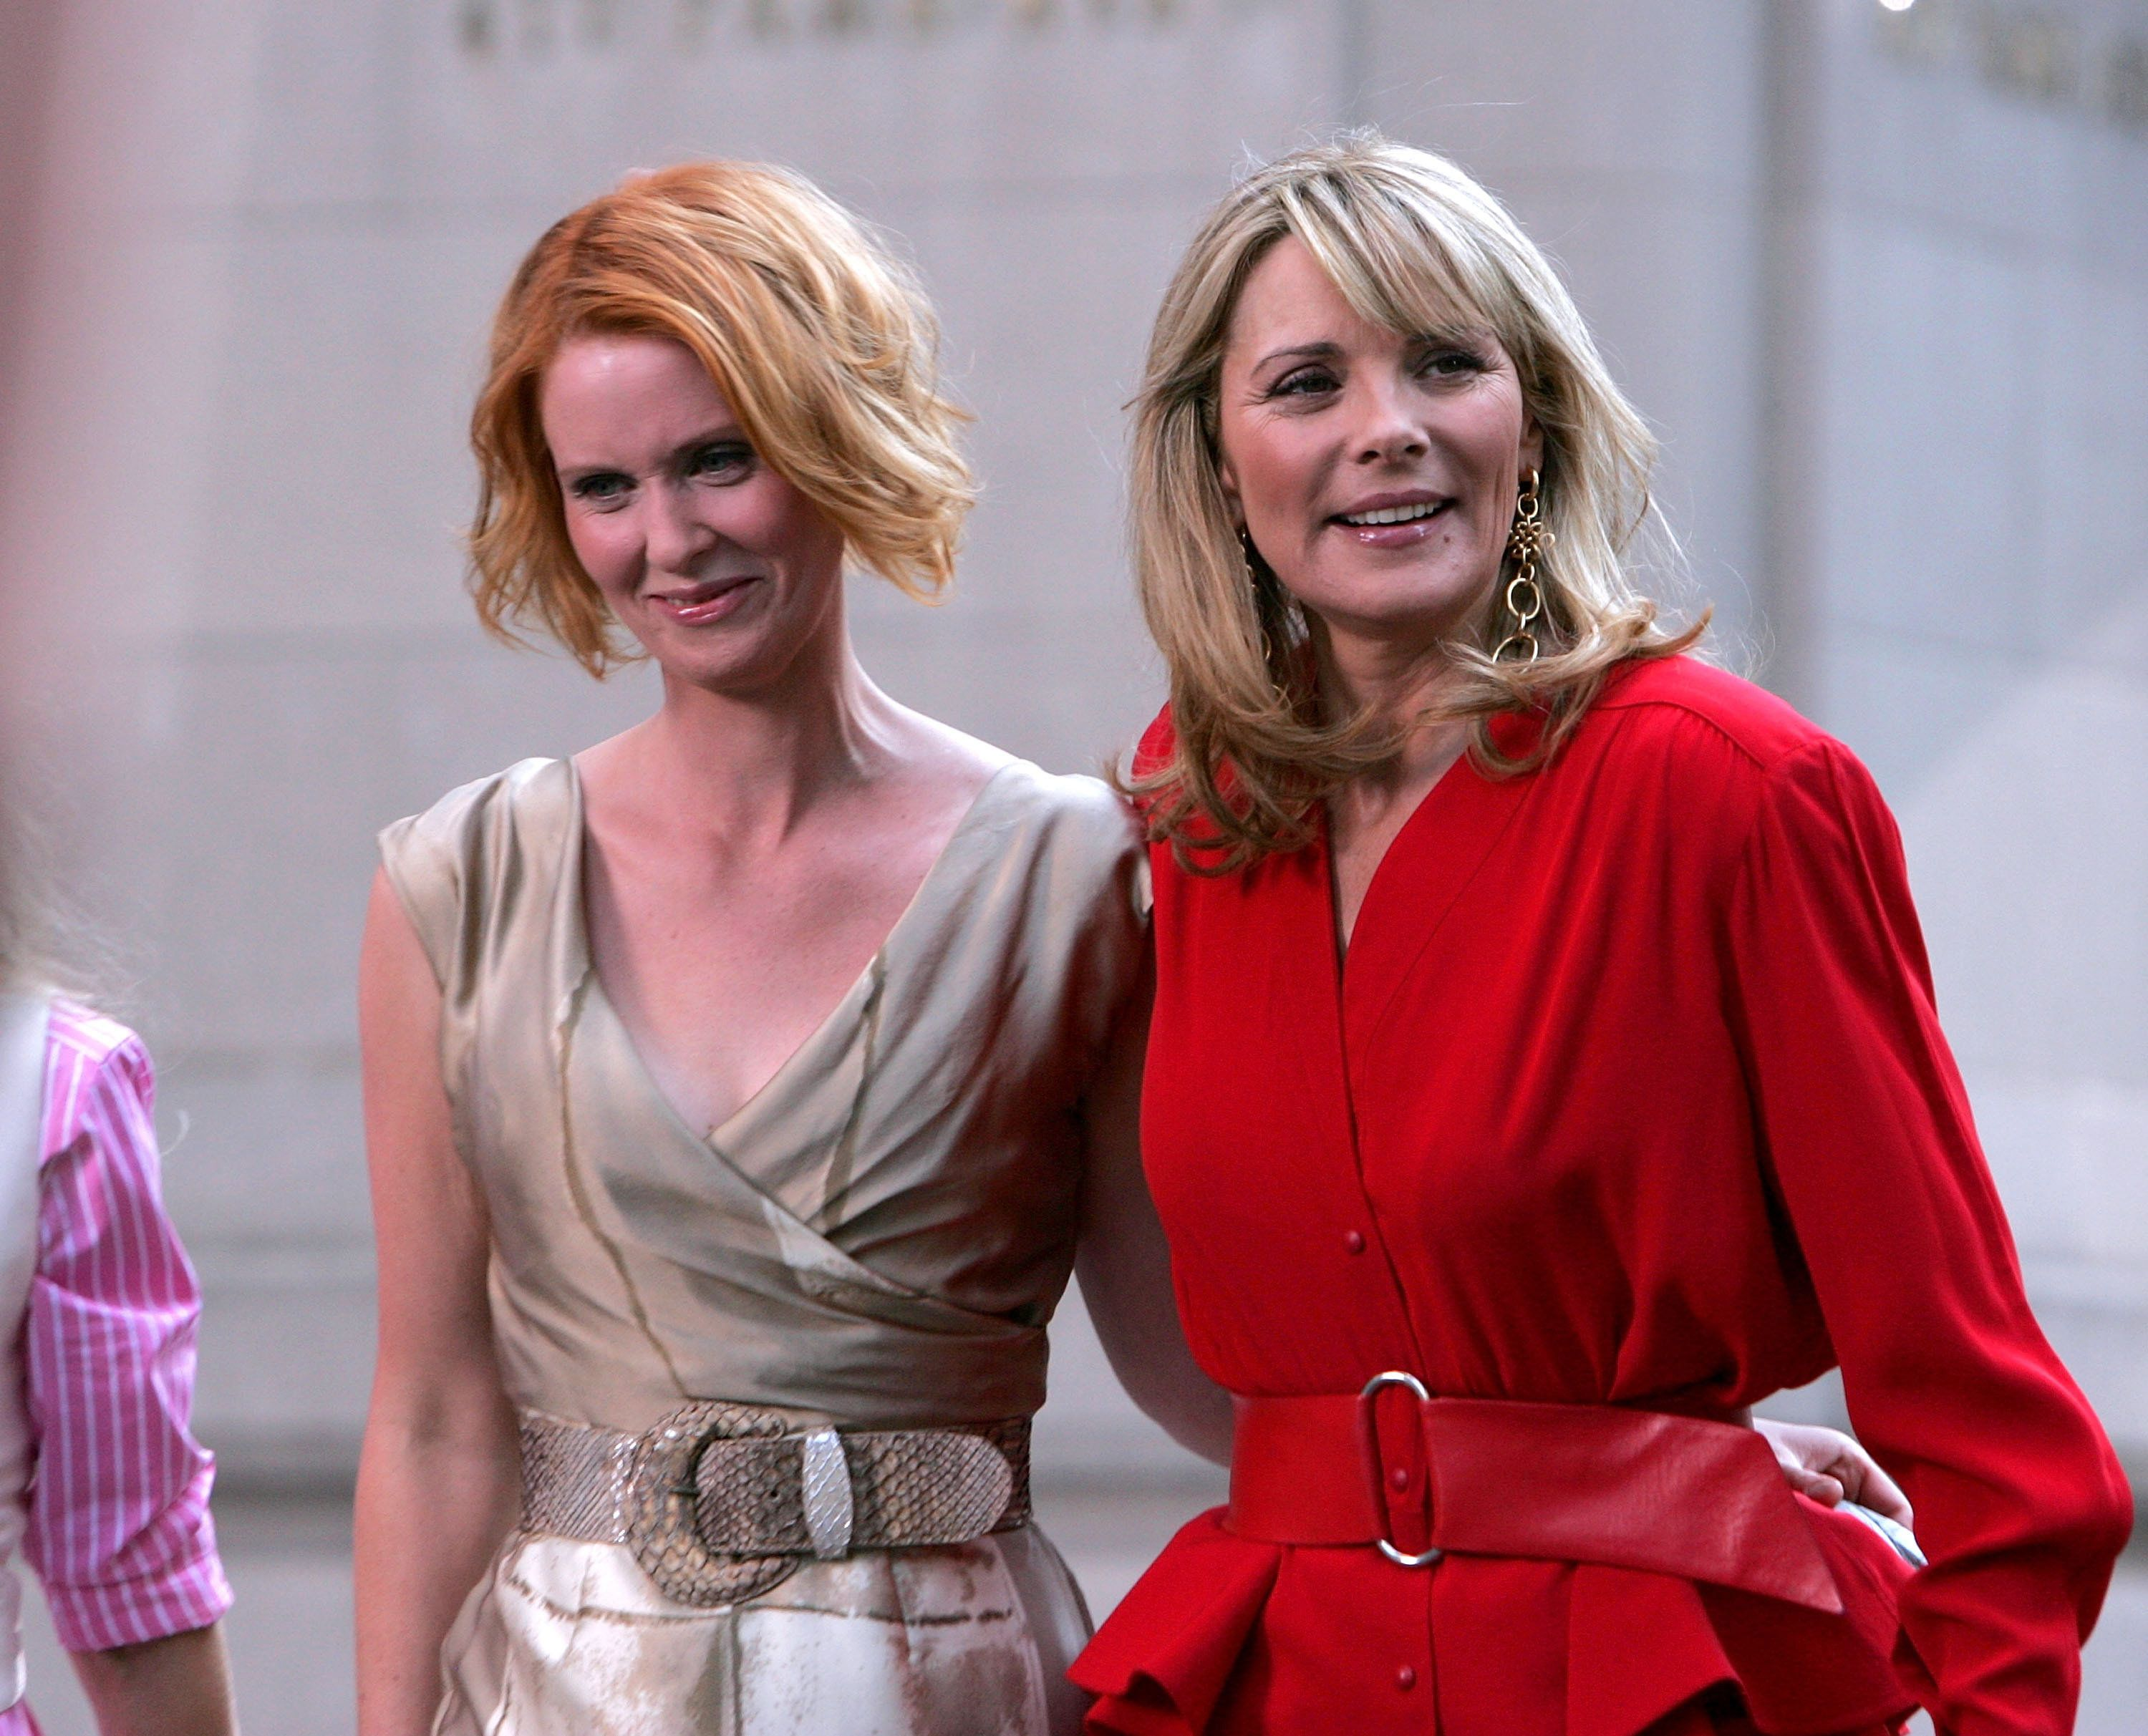 Kim Cattrall Offers Curt Response To Cynthia Nixon's New York Governor